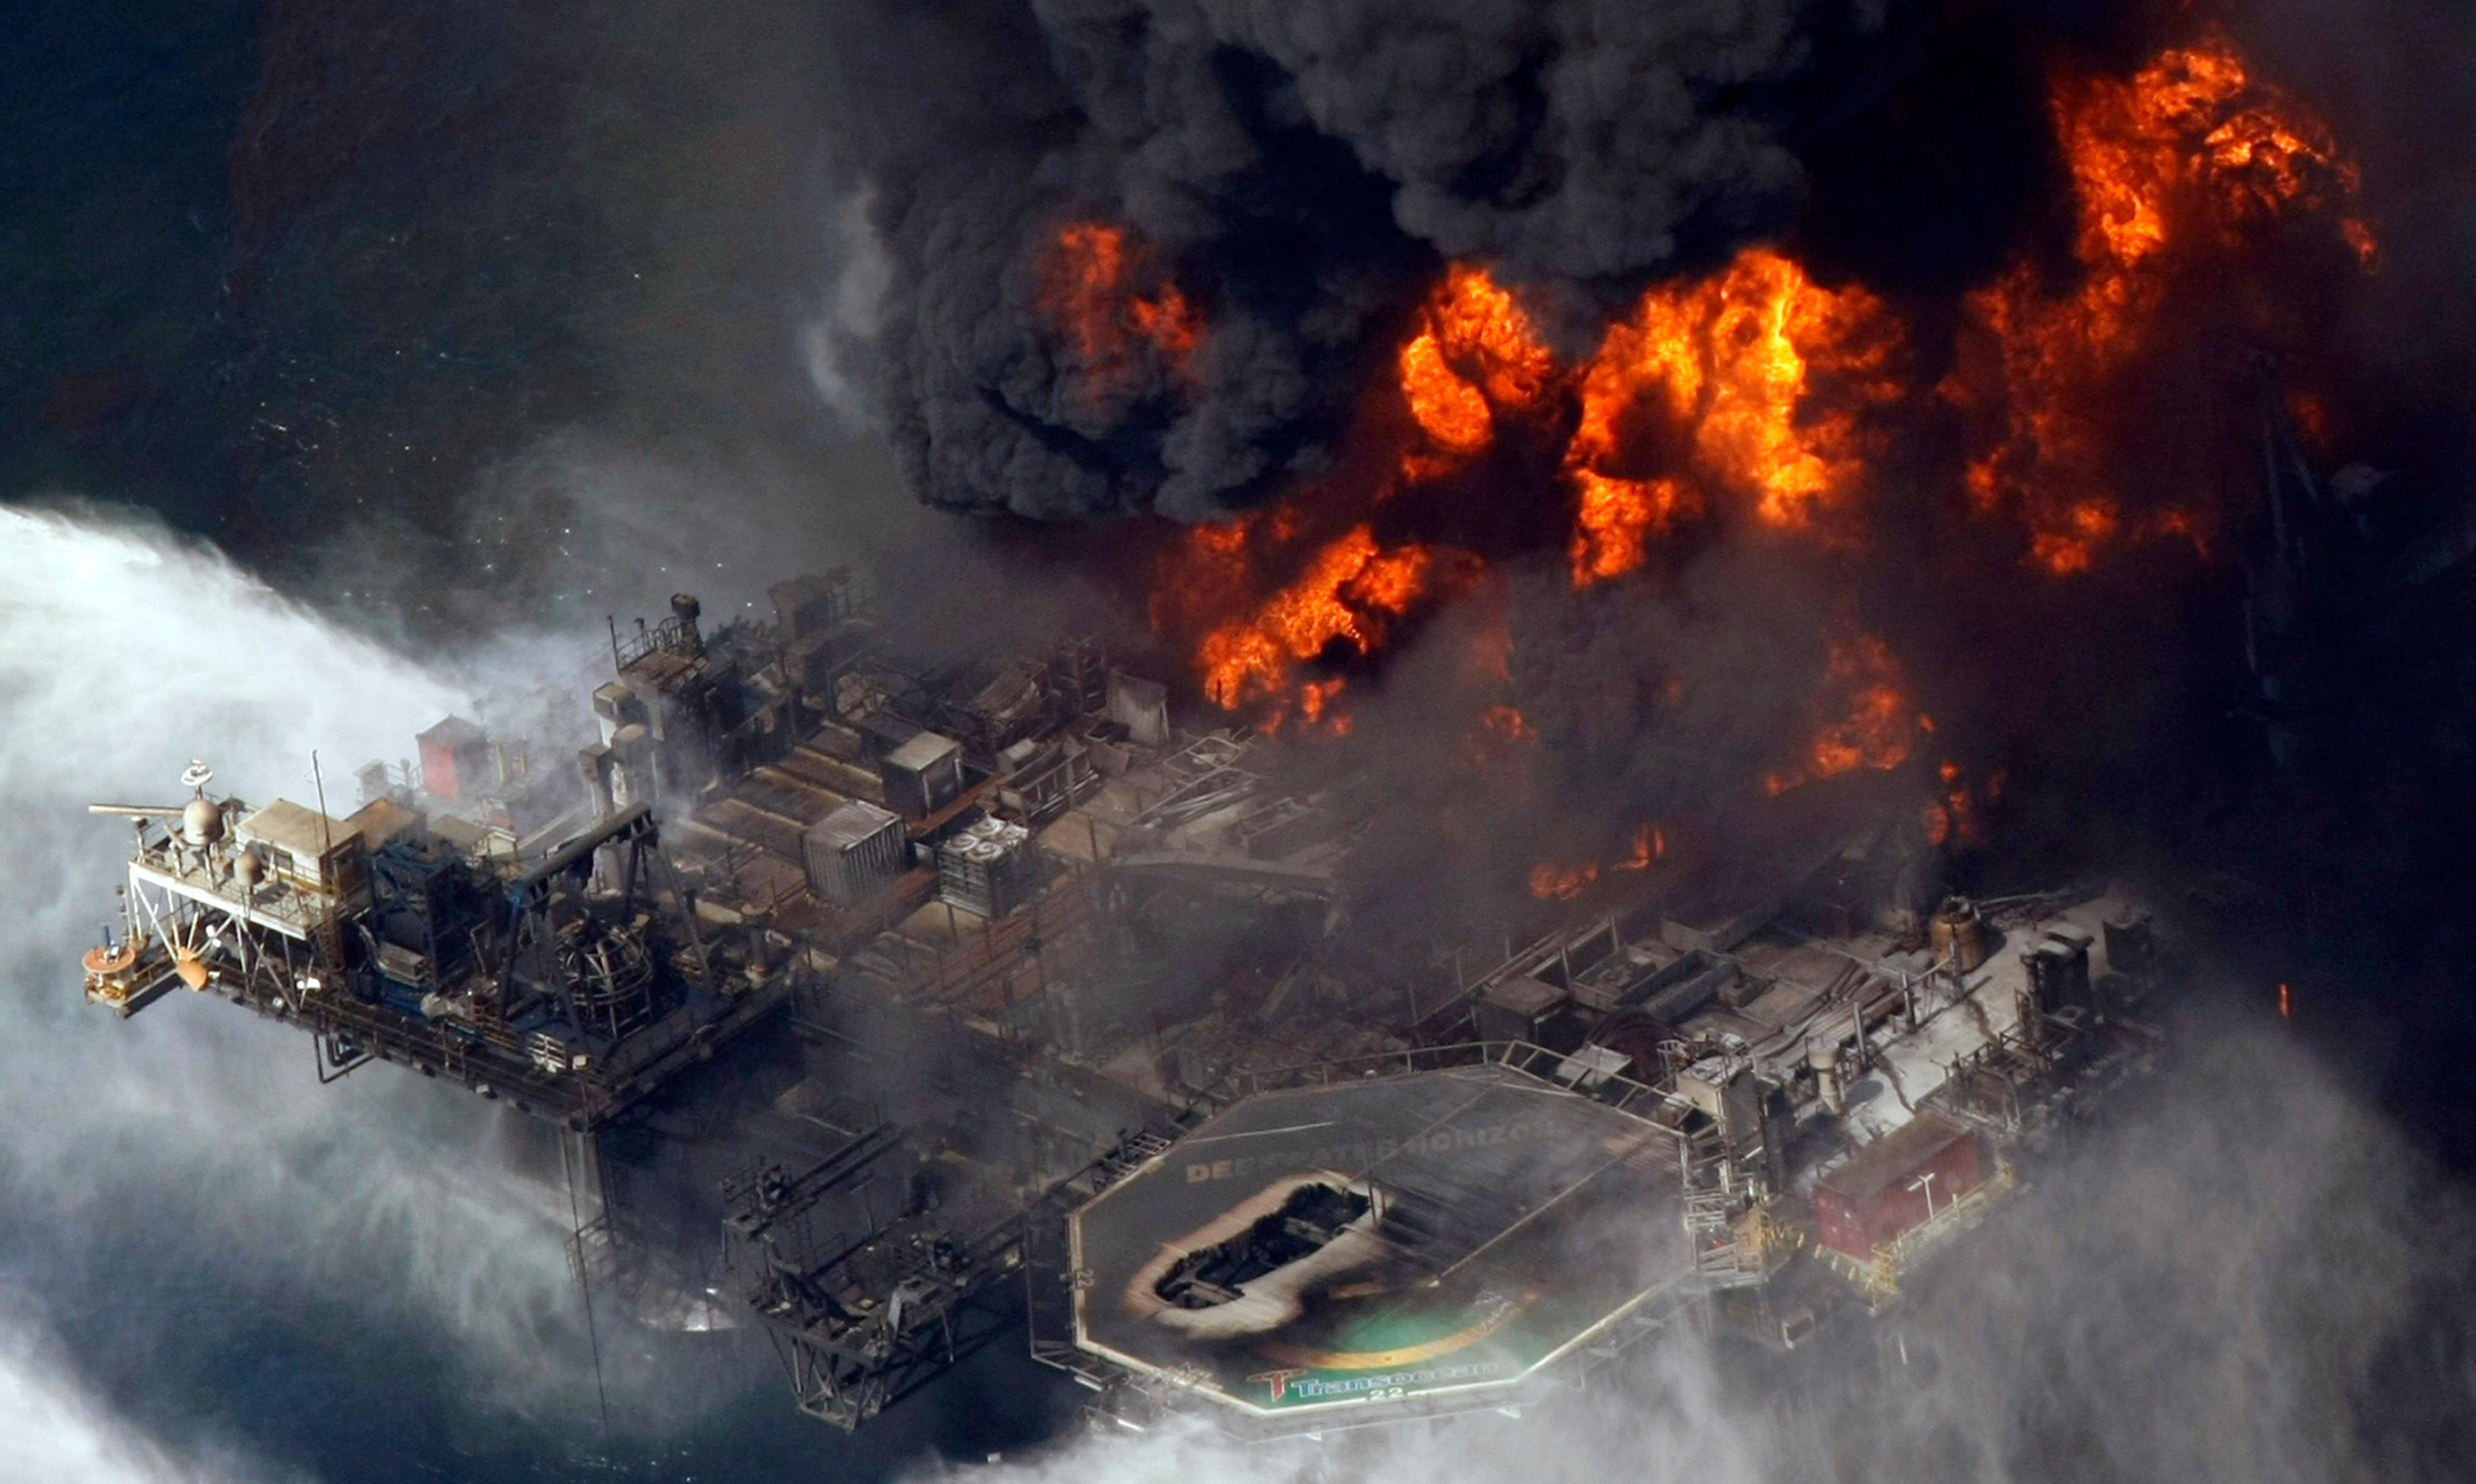 BP set to pay largest environmental fine in US history for Gulf oil spill